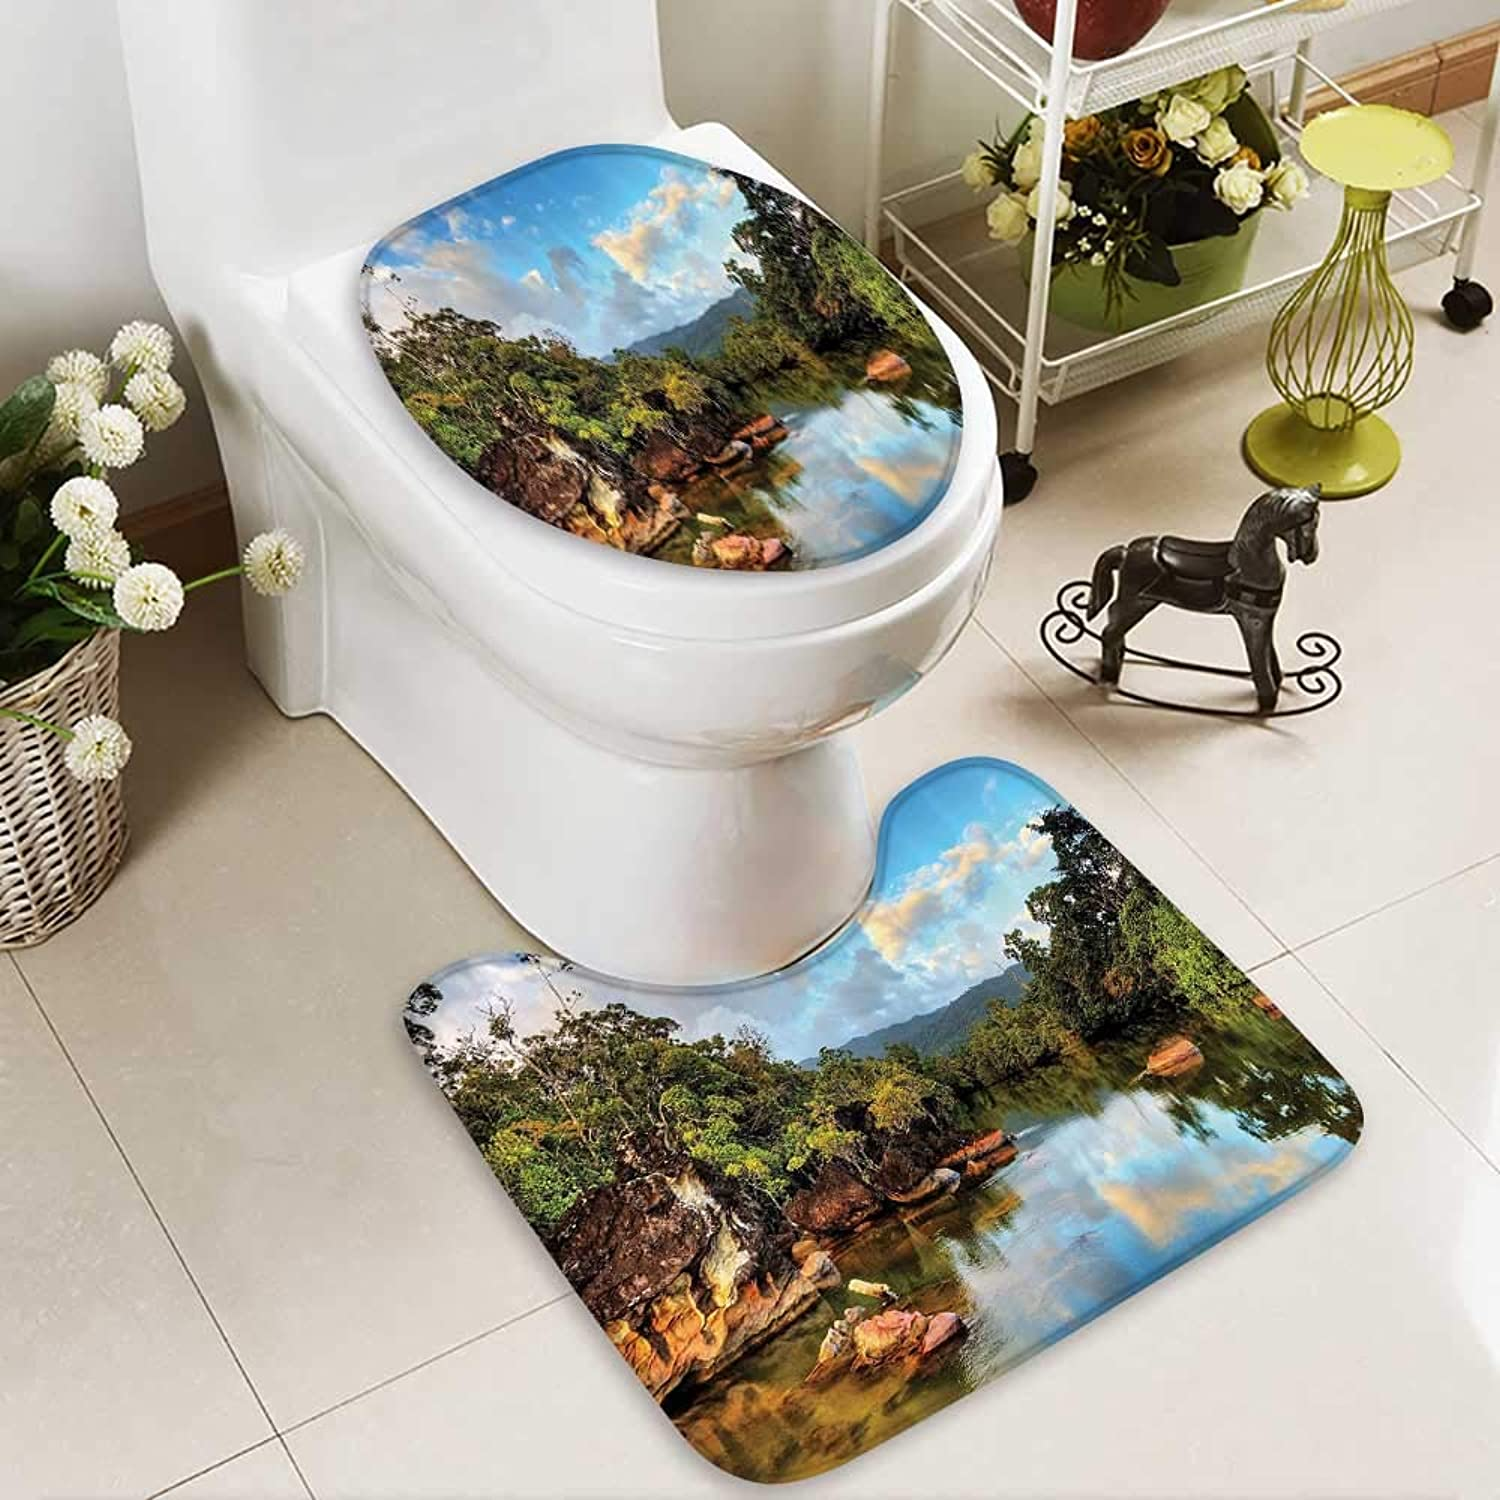 Muyindo Bathroom Non-Slip Floor Mat of The Tropical Jungle River The ACH of Masoala Natial Park in Mada with High Absorbency